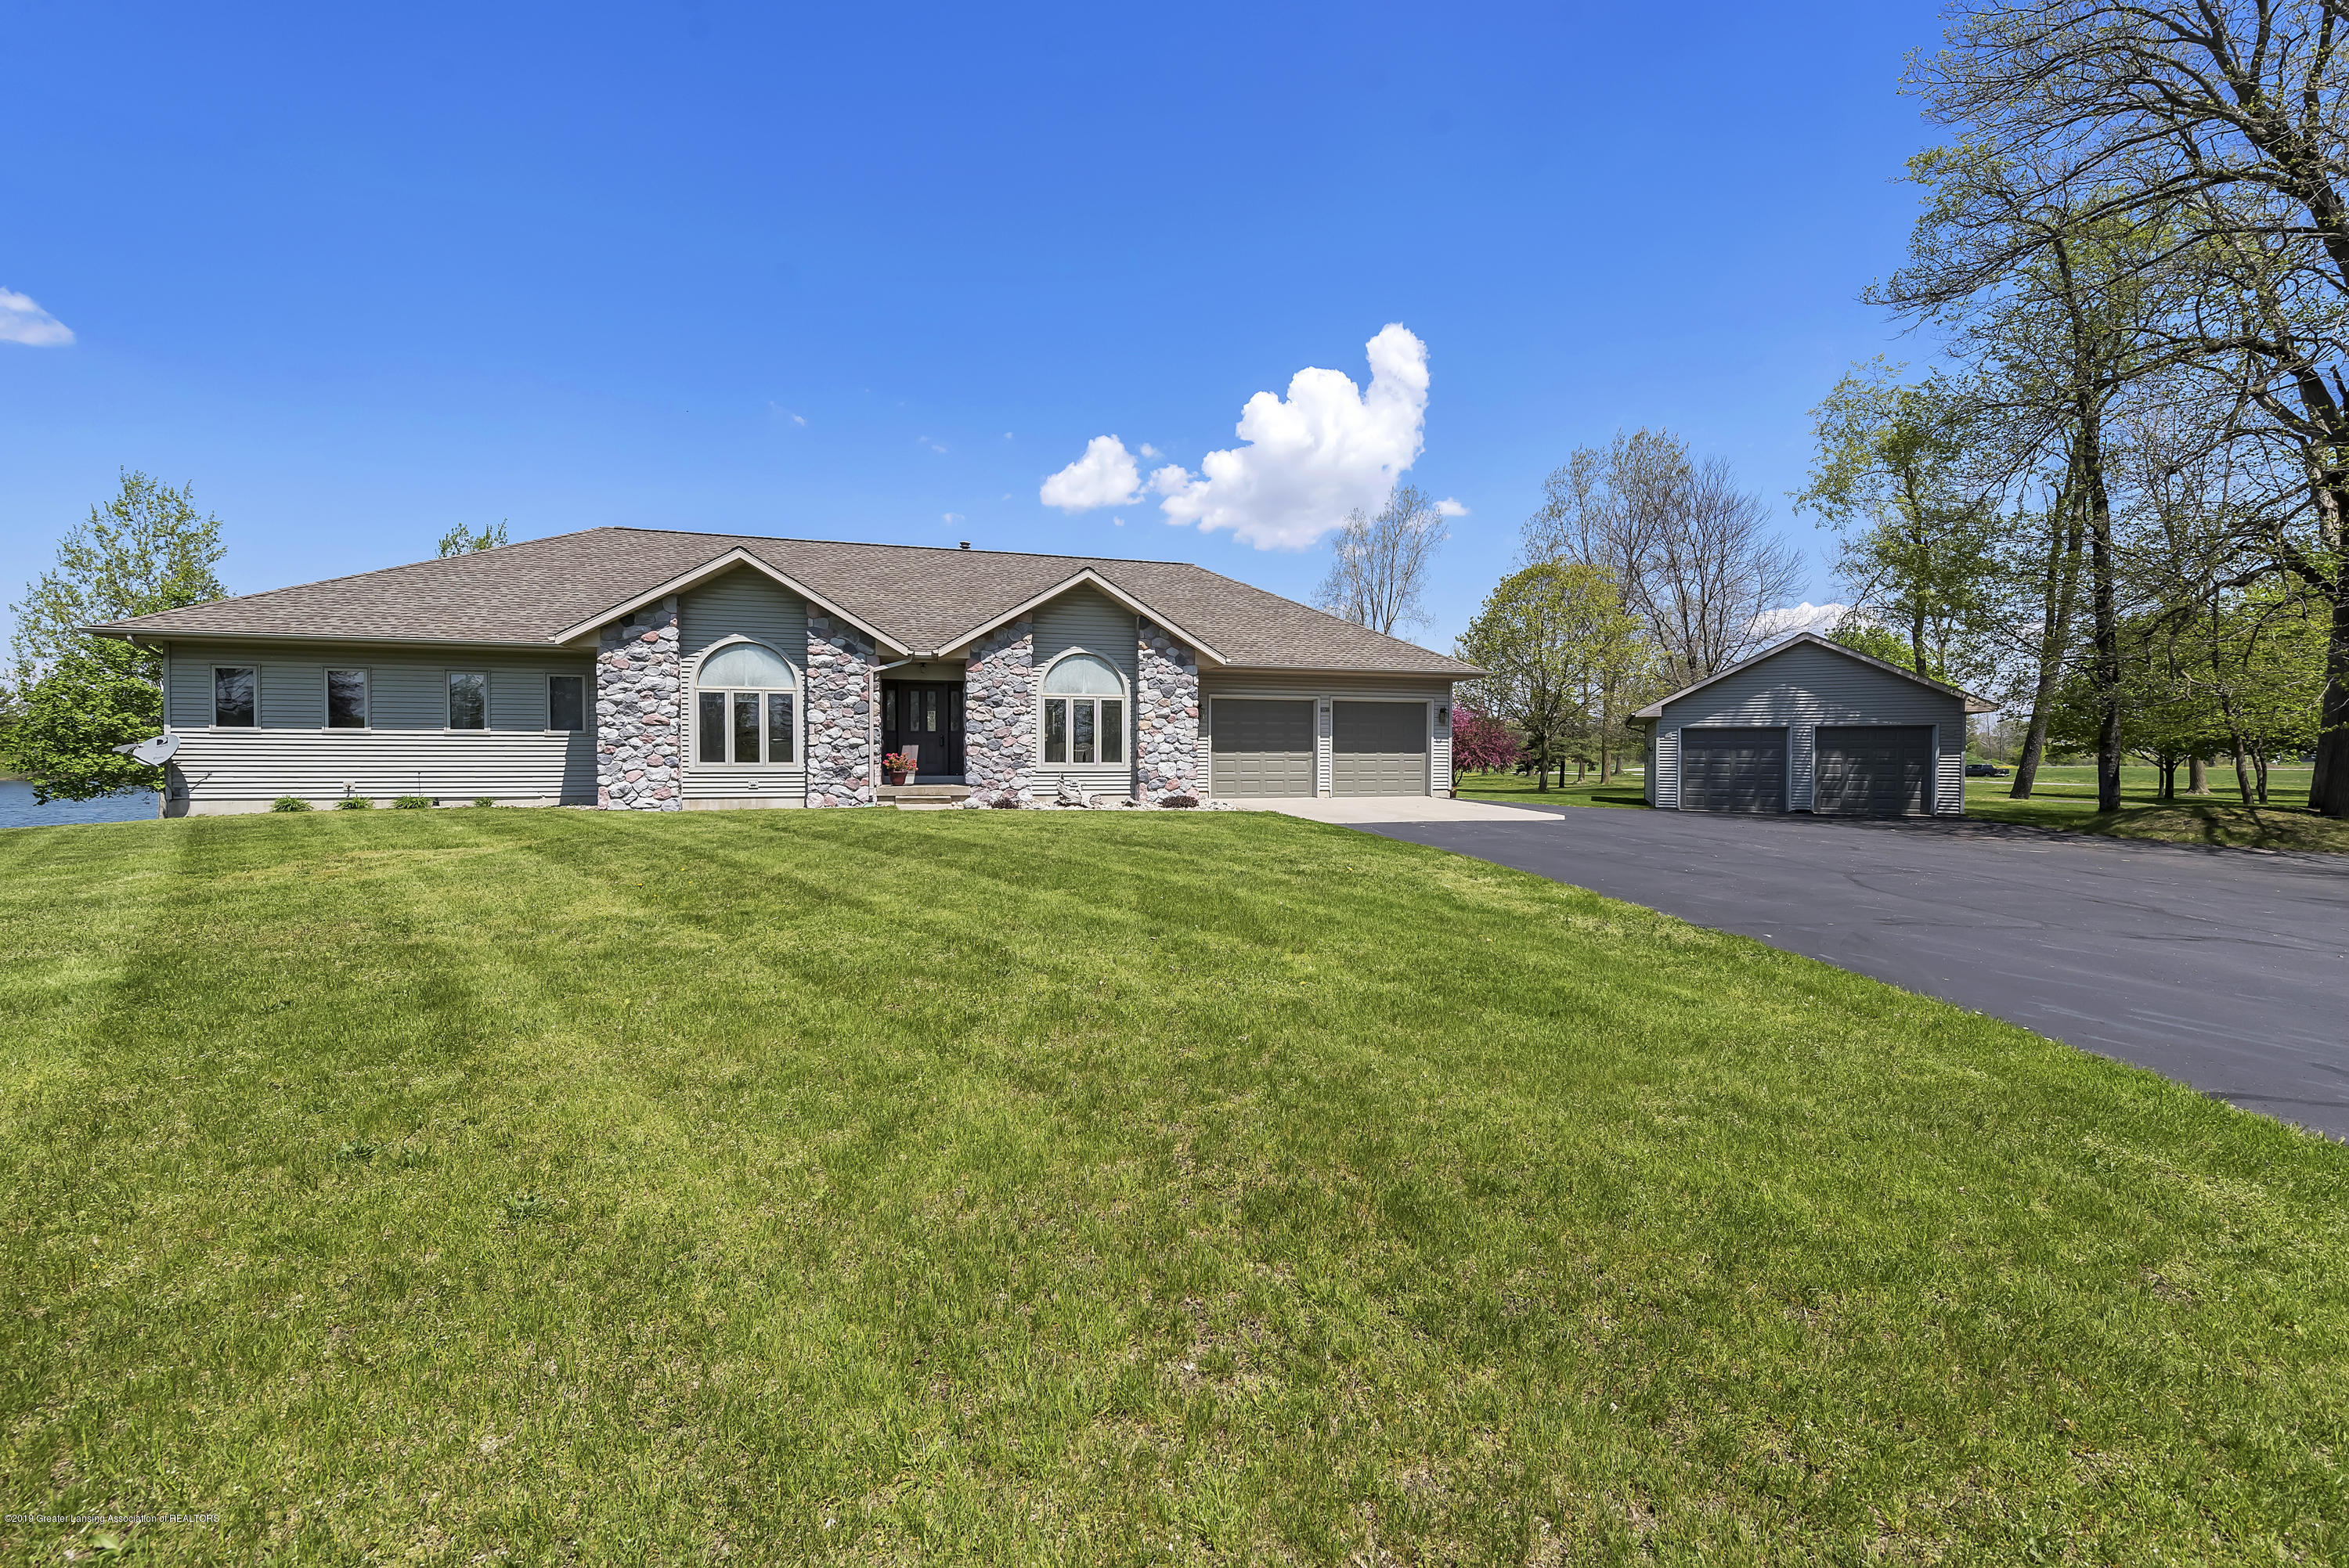 8558 Ironstone - Front View+ - 40